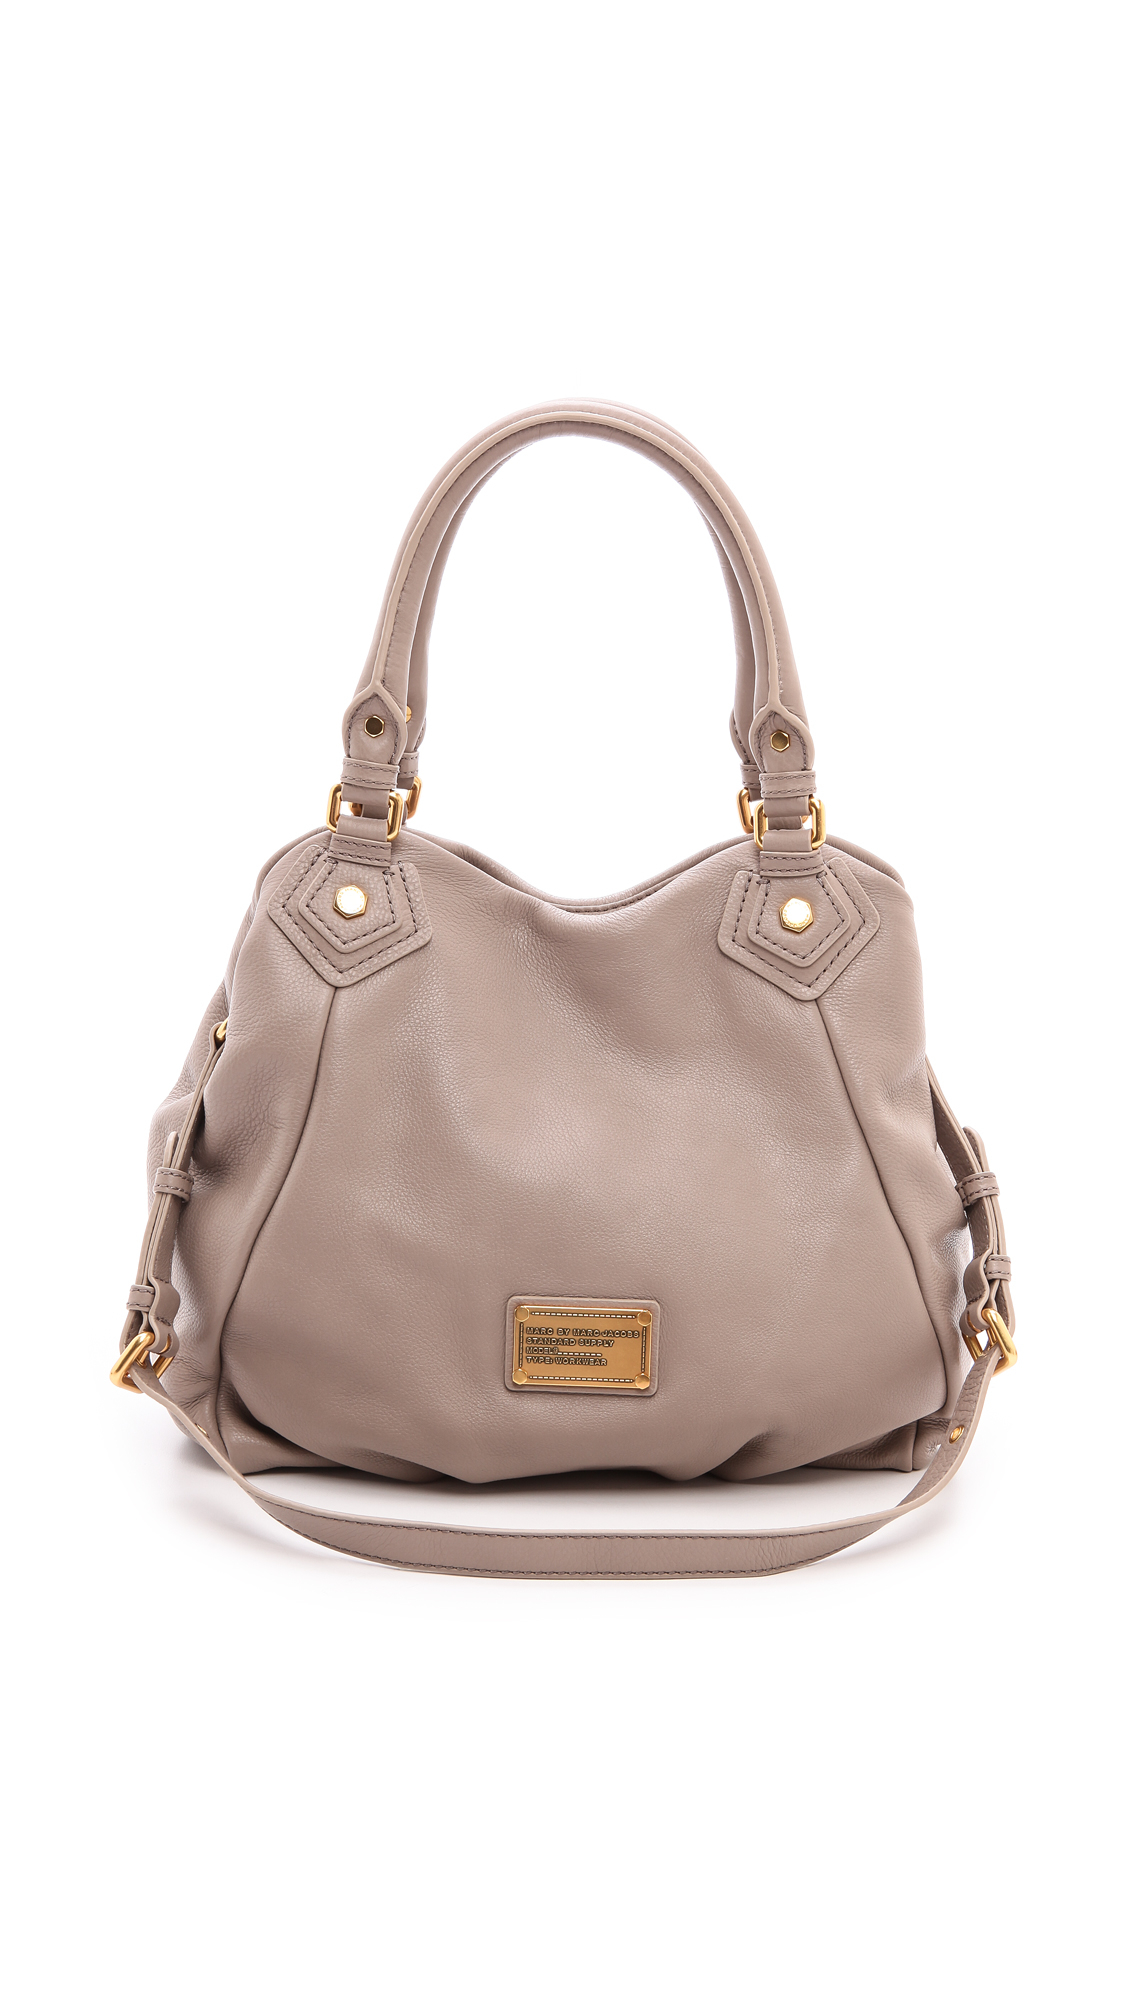 62ce61db0a02 Marc by marc jacobs fran bag   2018 Store Deals